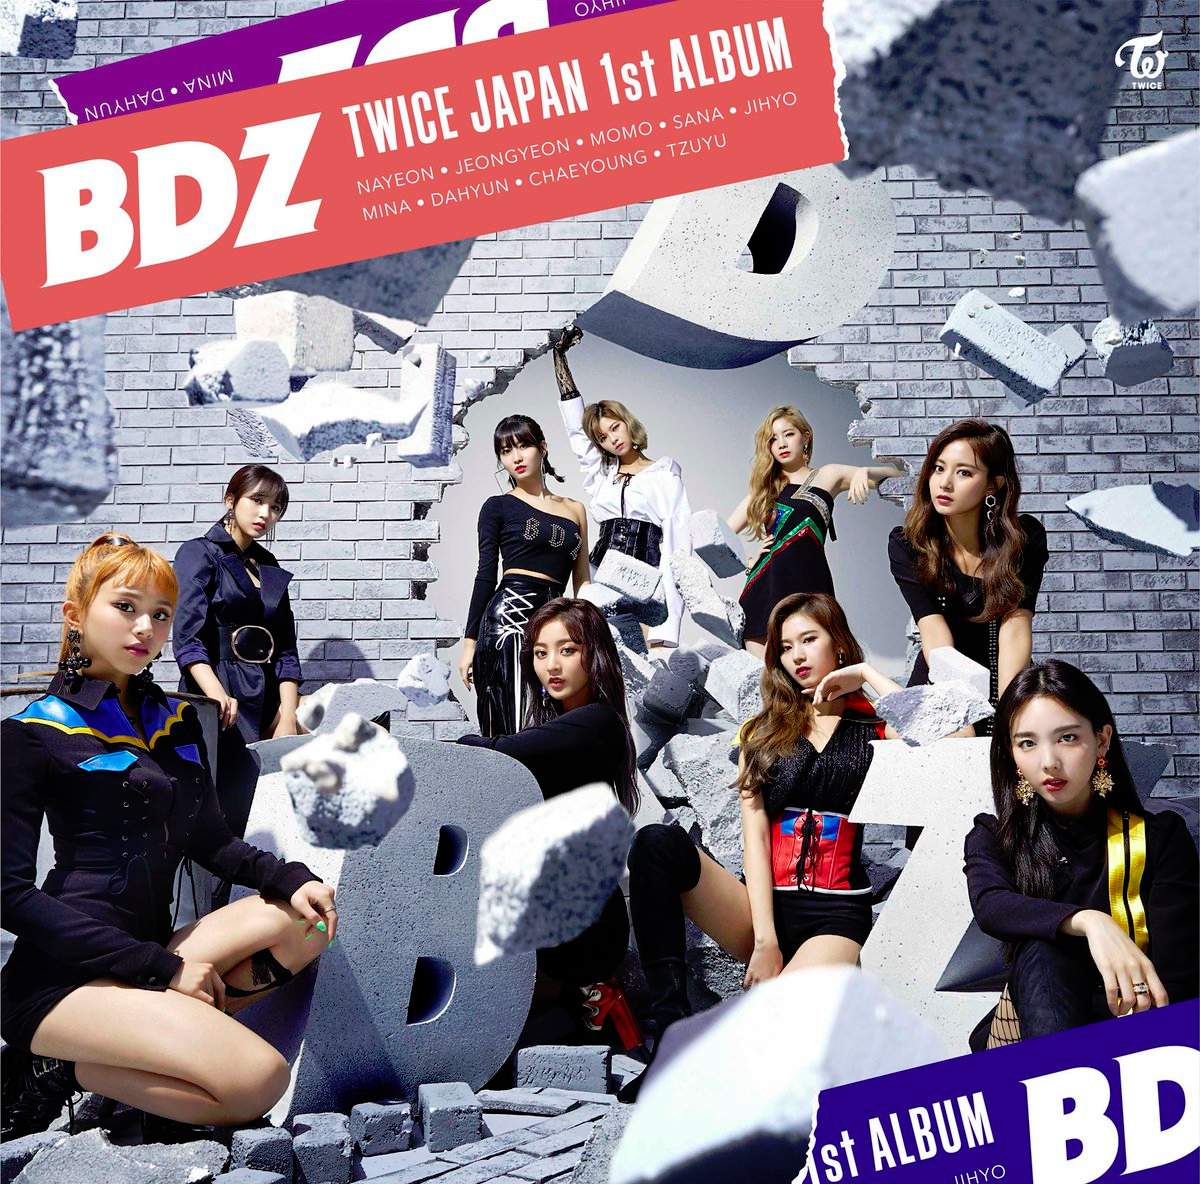 TWICE BDZ Normal Ed. album cover.png